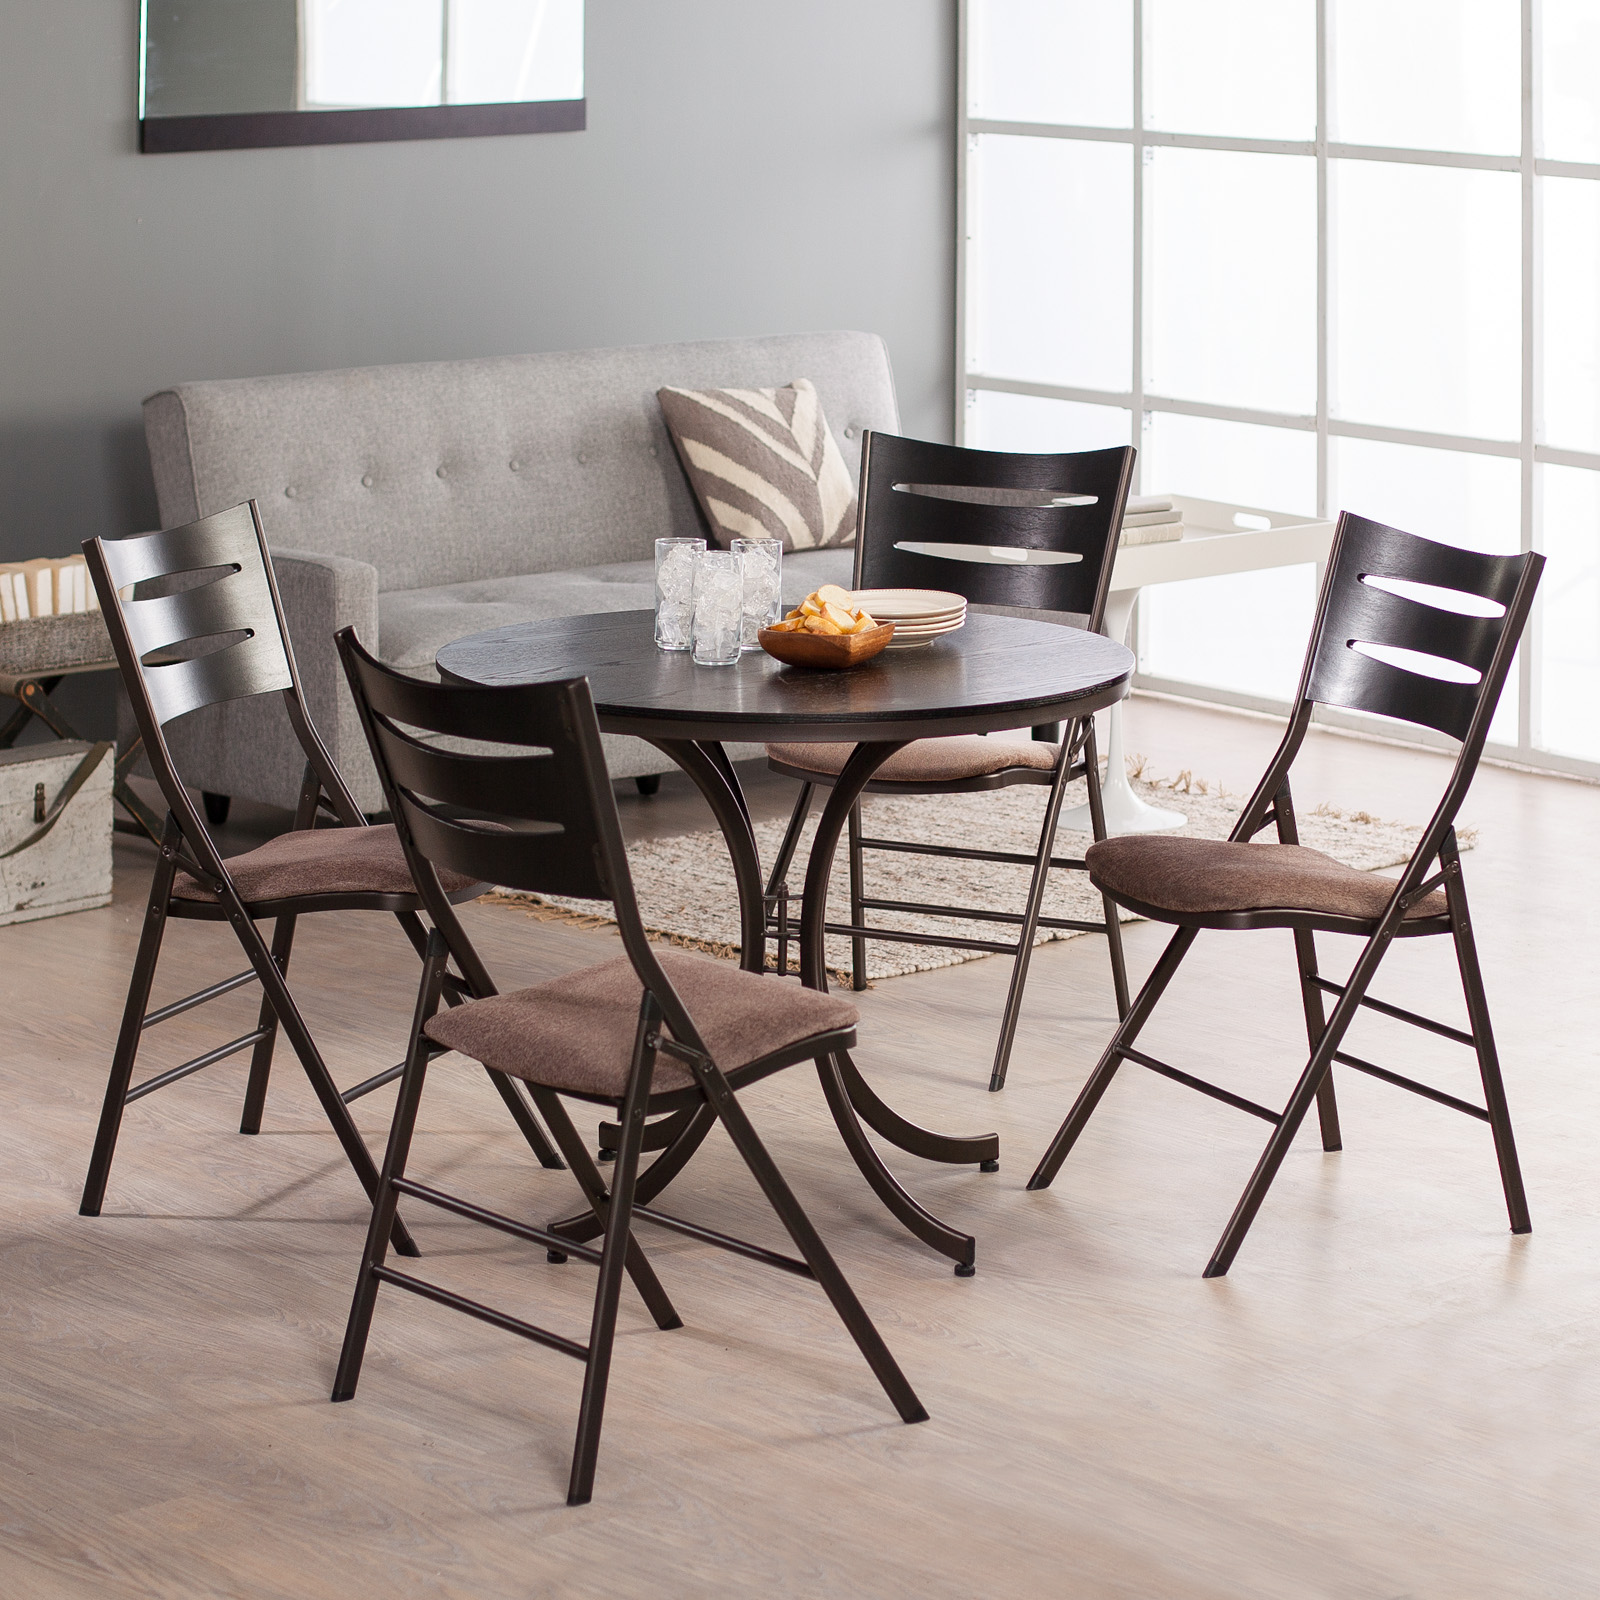 Iron Table And Chairs Set Innobella Destiny Metal Table And Chair Set 5 Pc Set At Hayneedle